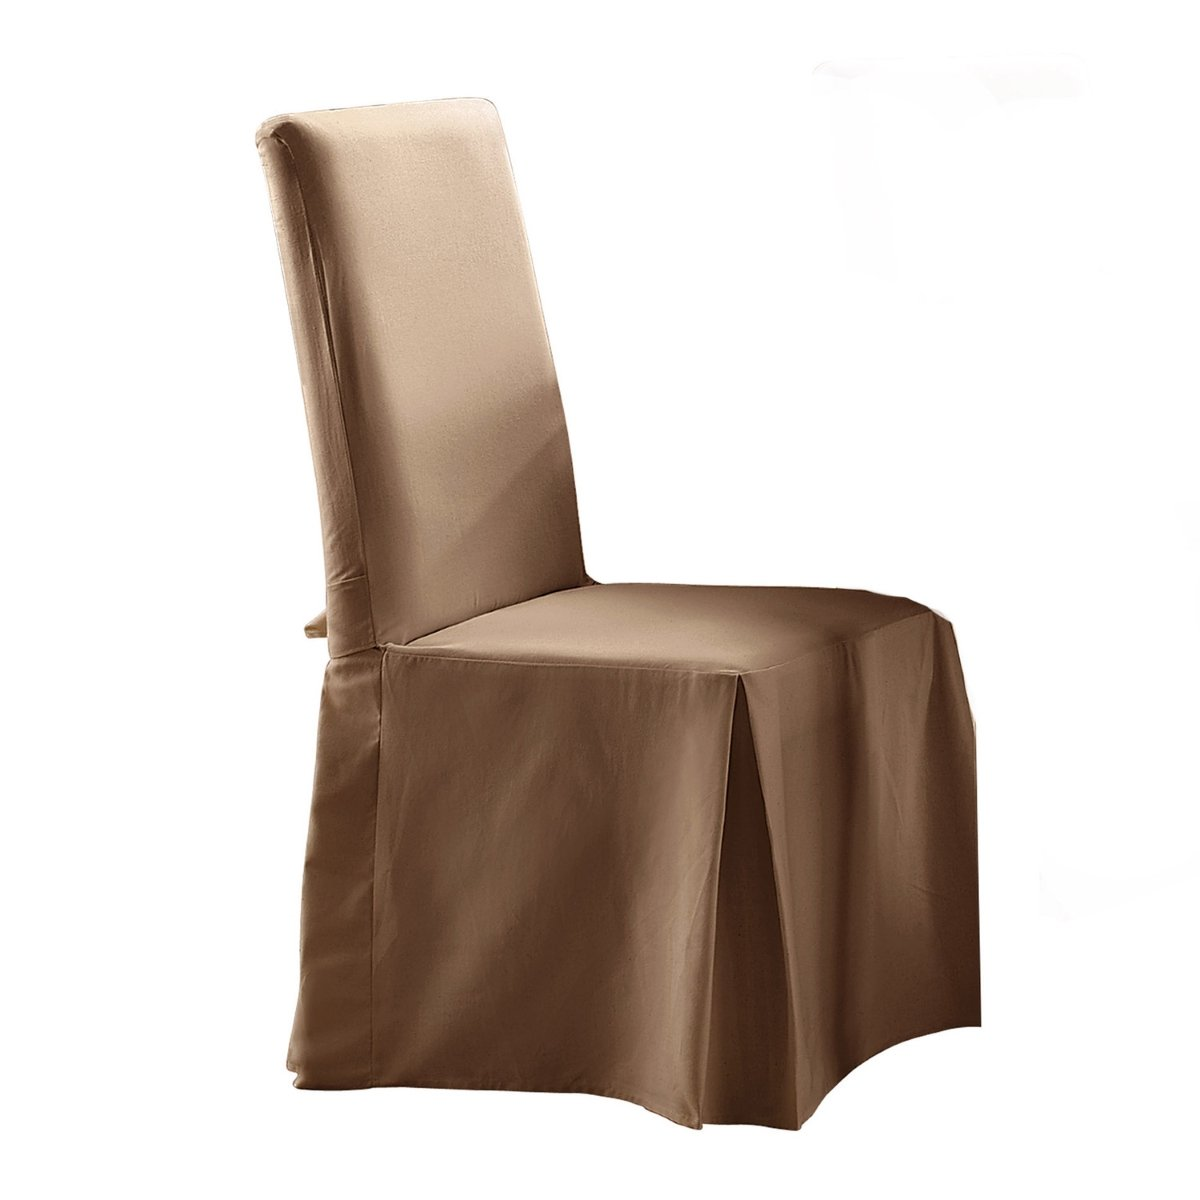 cotton recliner chair covers round kitchen table and chairs sure fit duck dining slipcover home